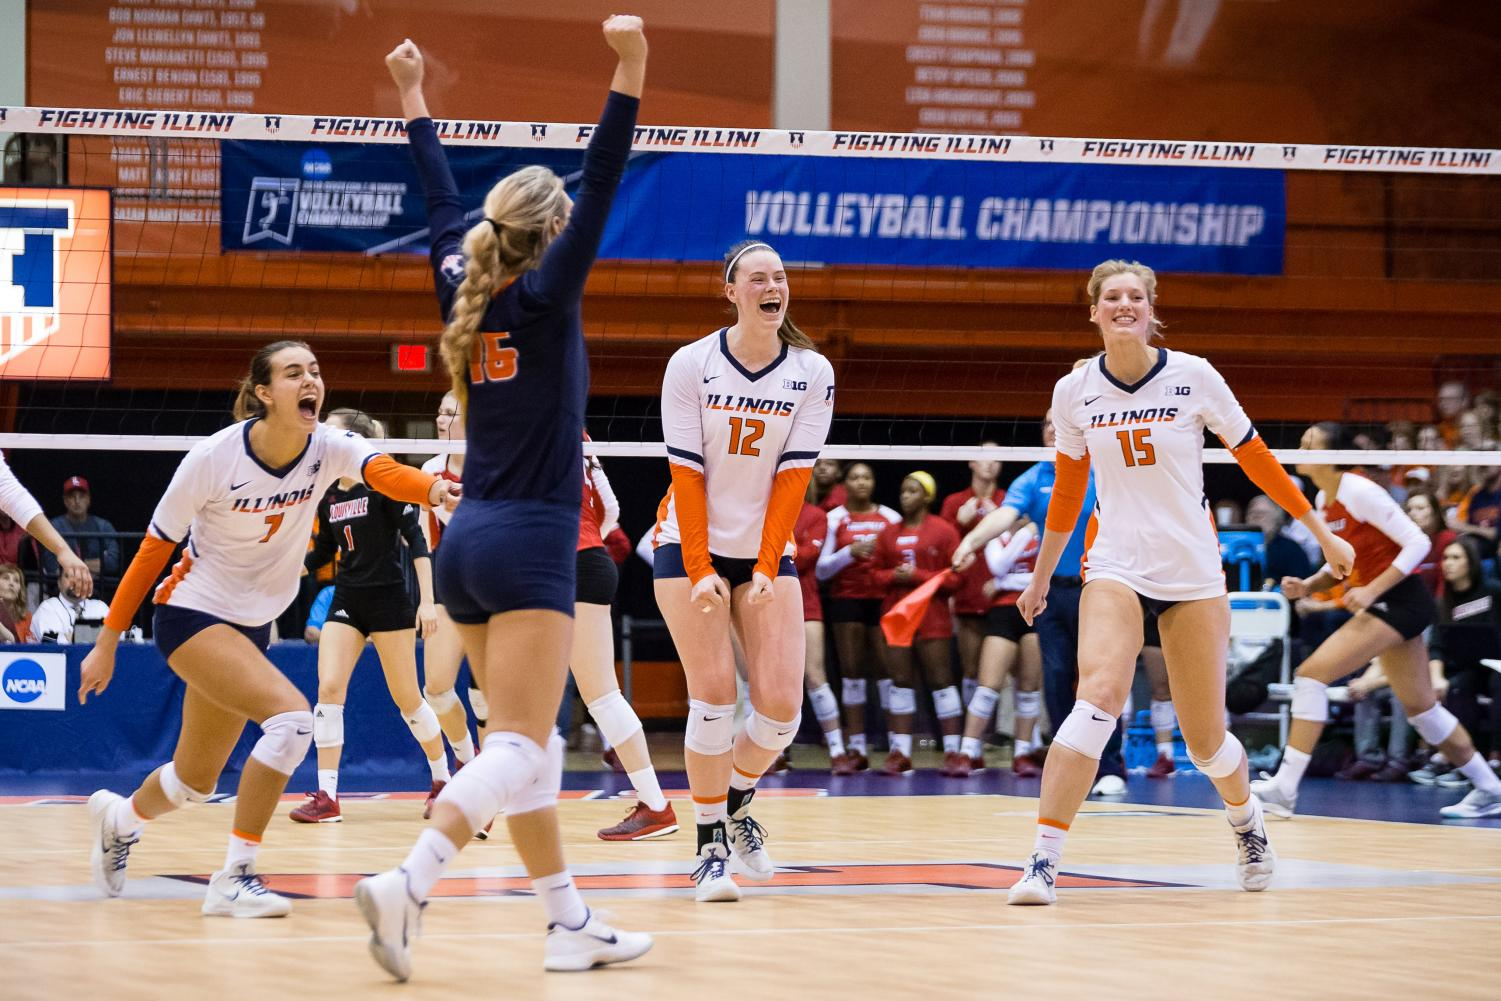 The Illini celebrate after scoring a point during the match against the Cardinals in the second round of the NCAA Tournament at Huff Hall on Saturday.